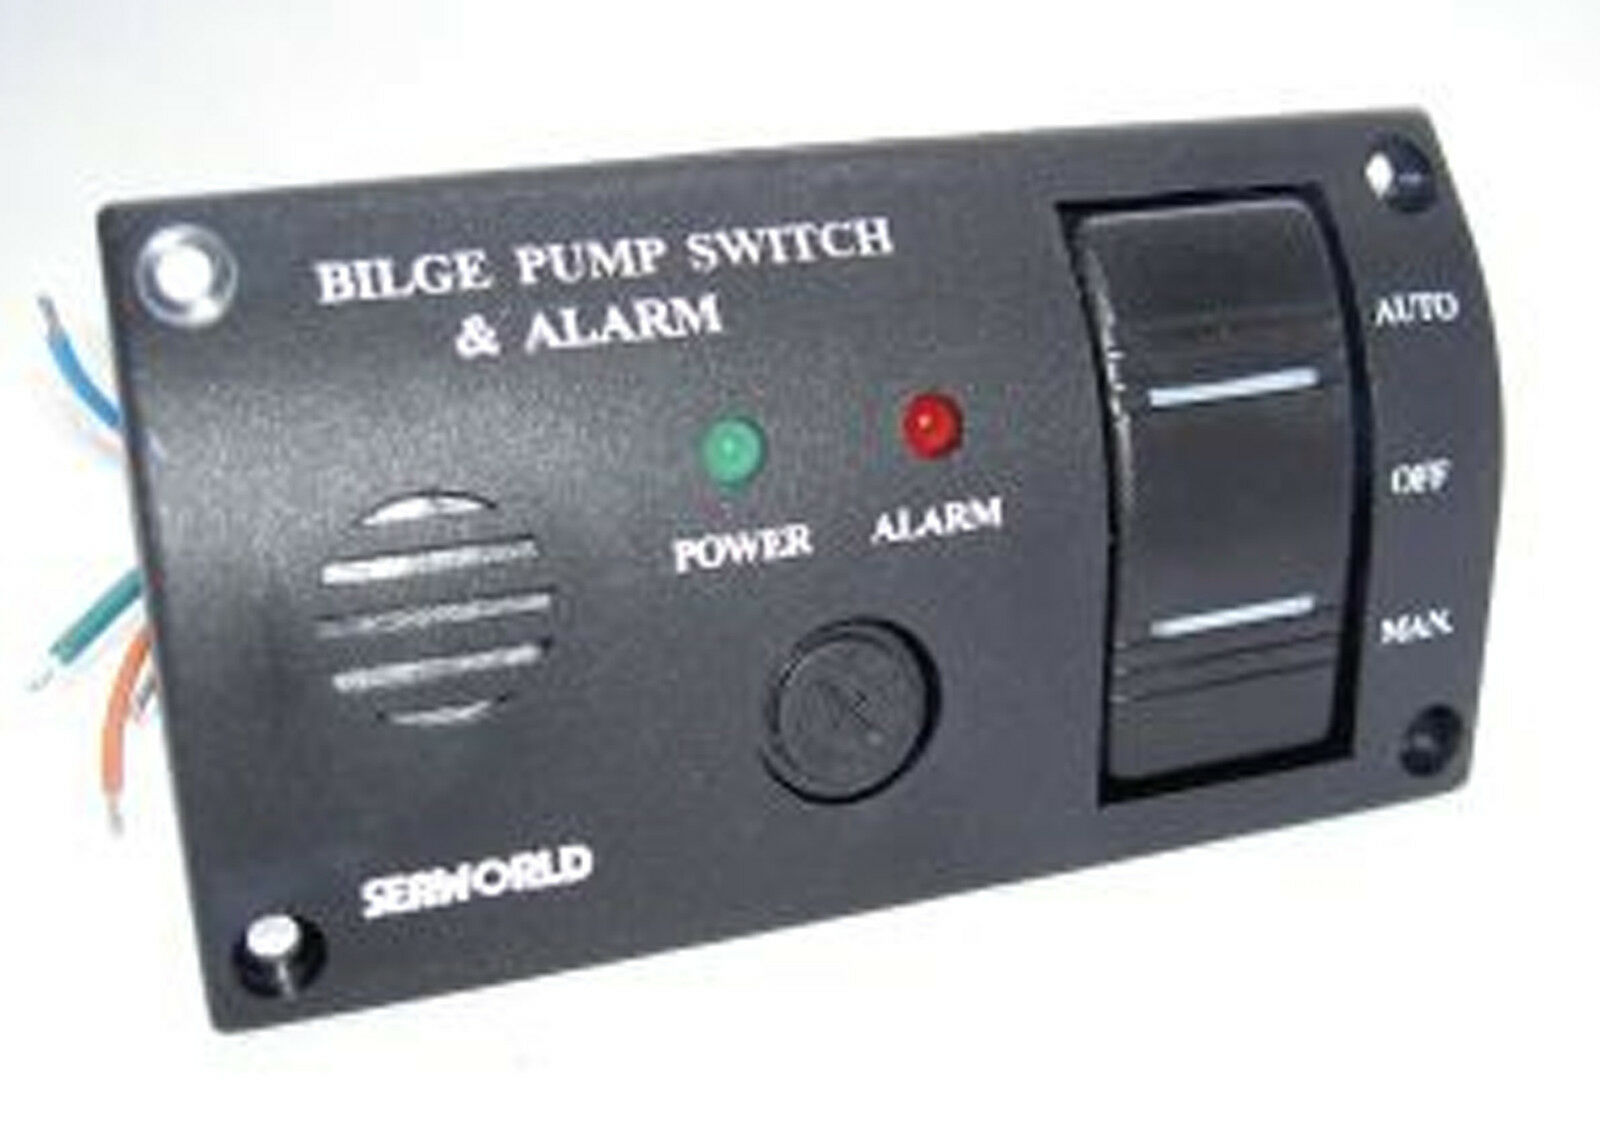 High Water Bilge Alarm Wiring Diagram Library Rule Pump Float Switch And Panel Marine Boat Seaworld 12v Illuminated 10 10709 1 Of